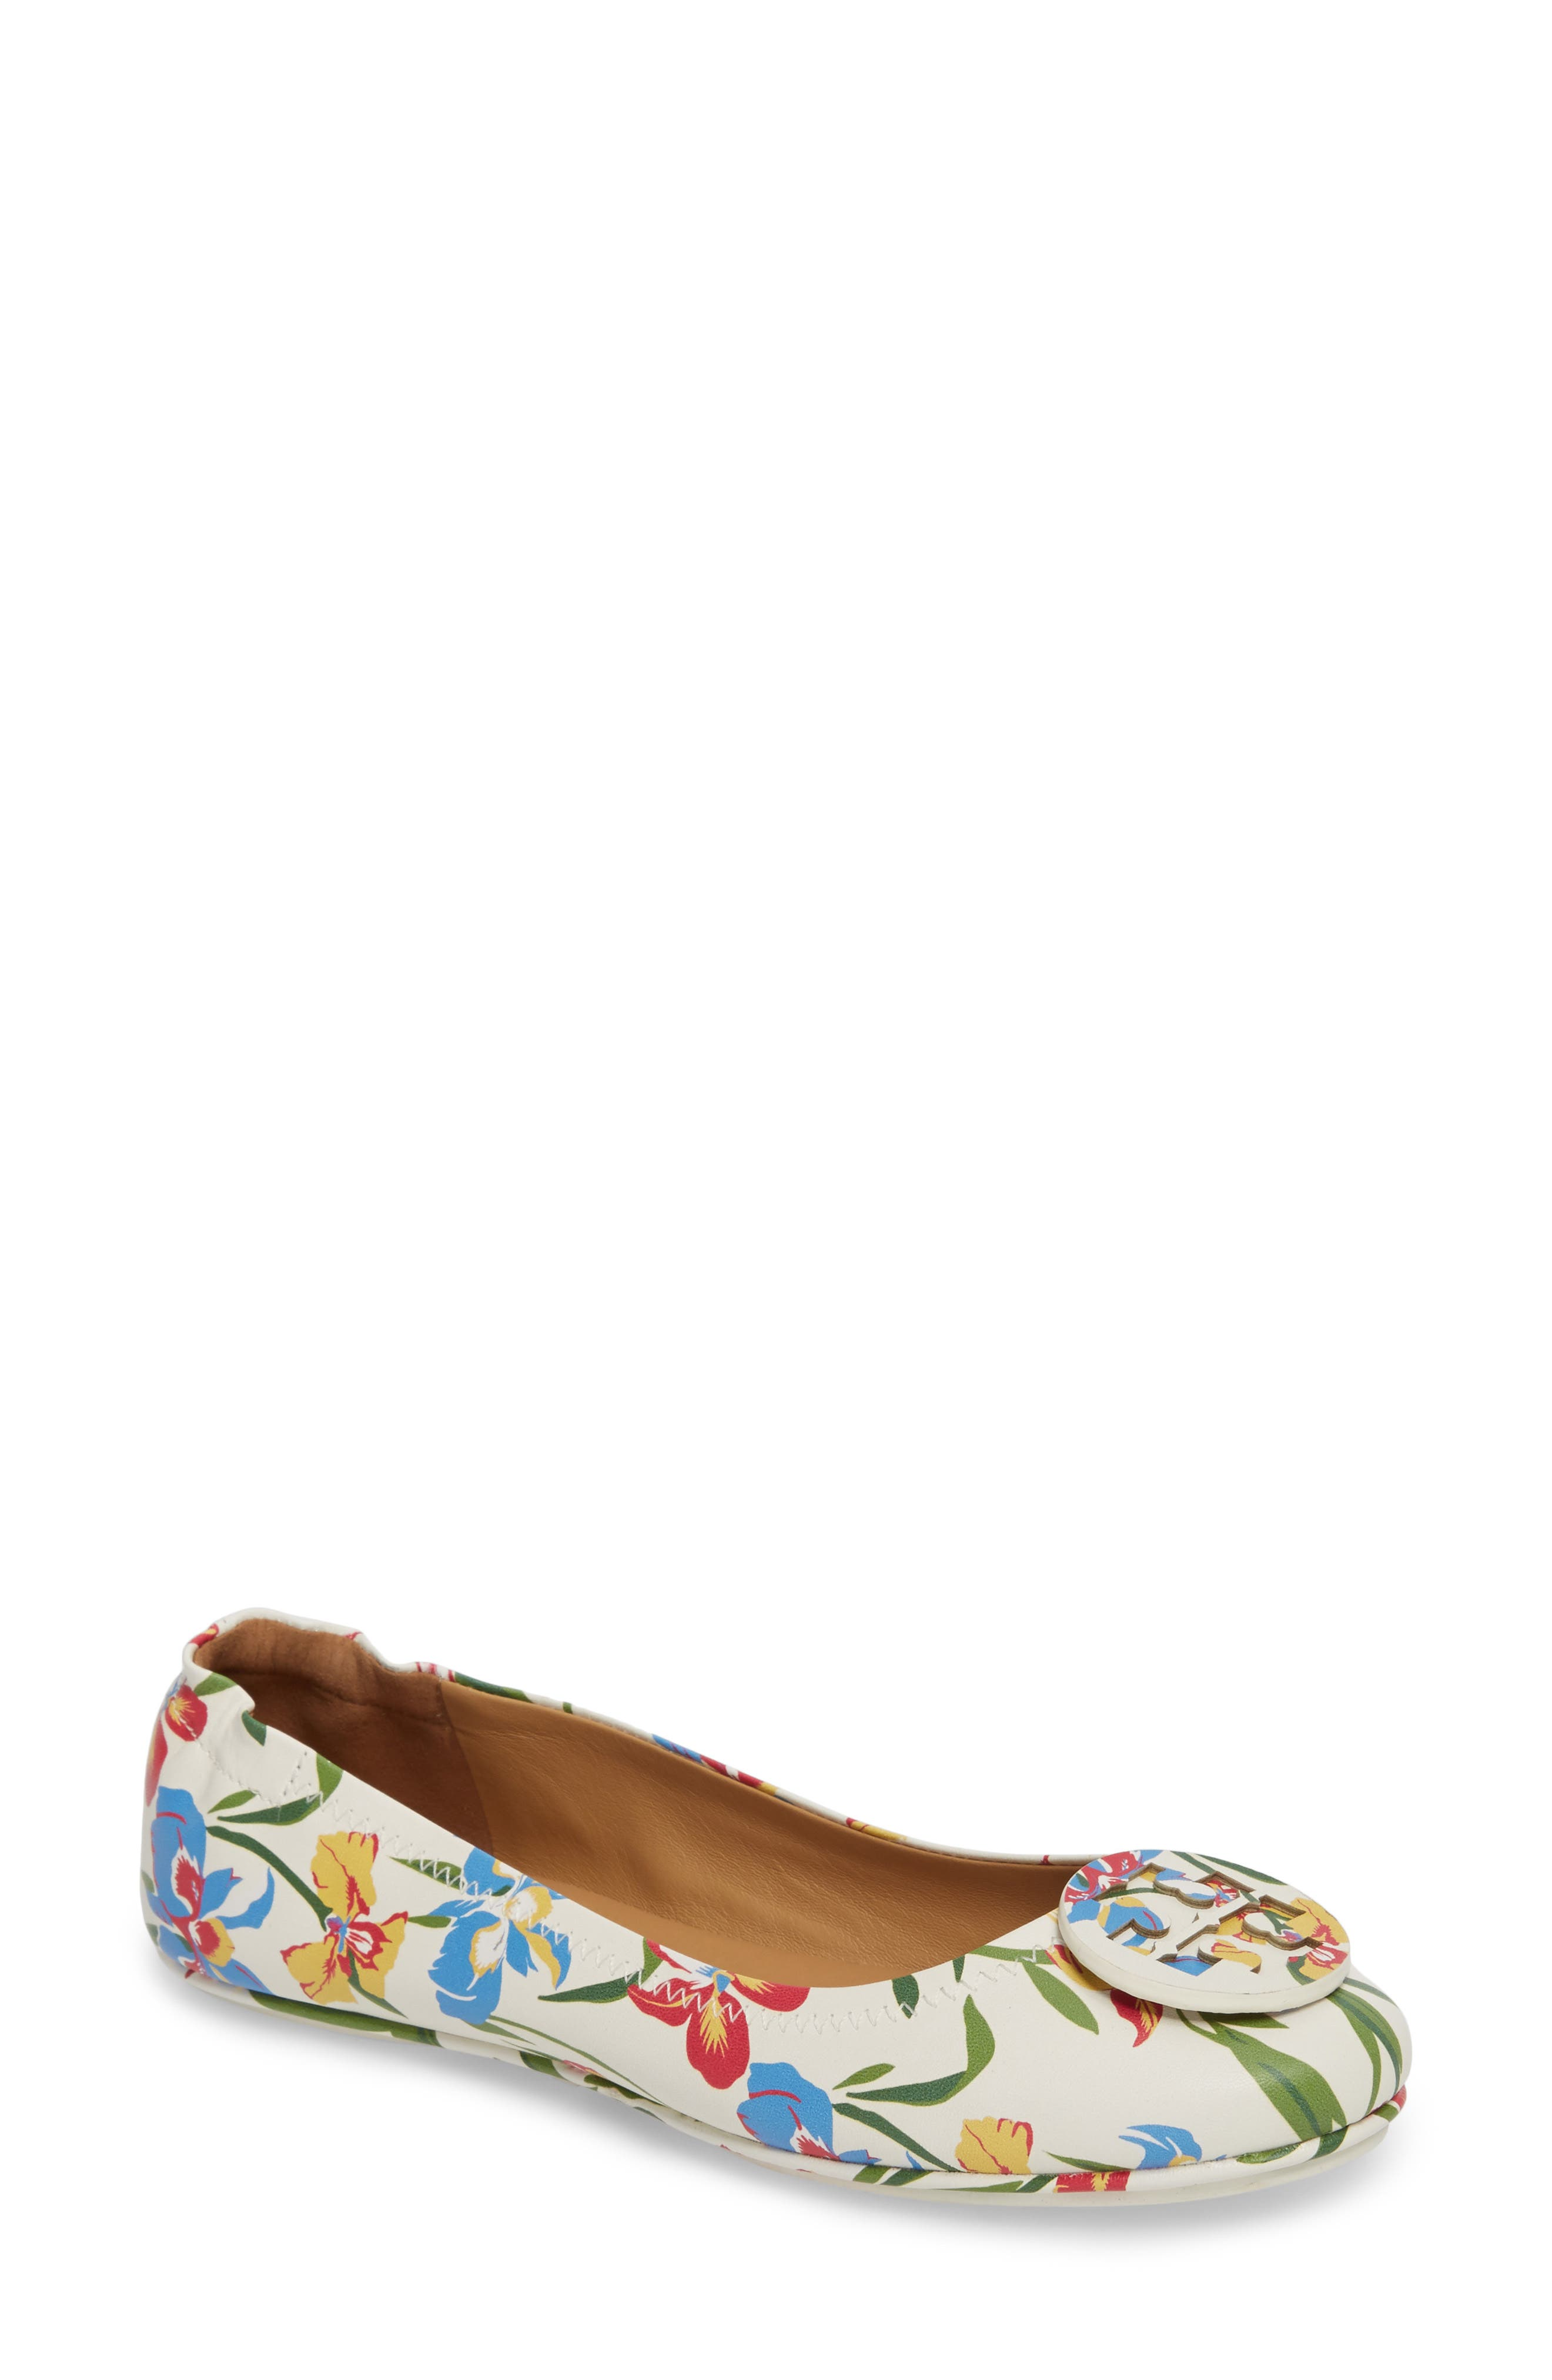 Main Image - Tory Burch 'Minnie' Travel Ballet Flat ...